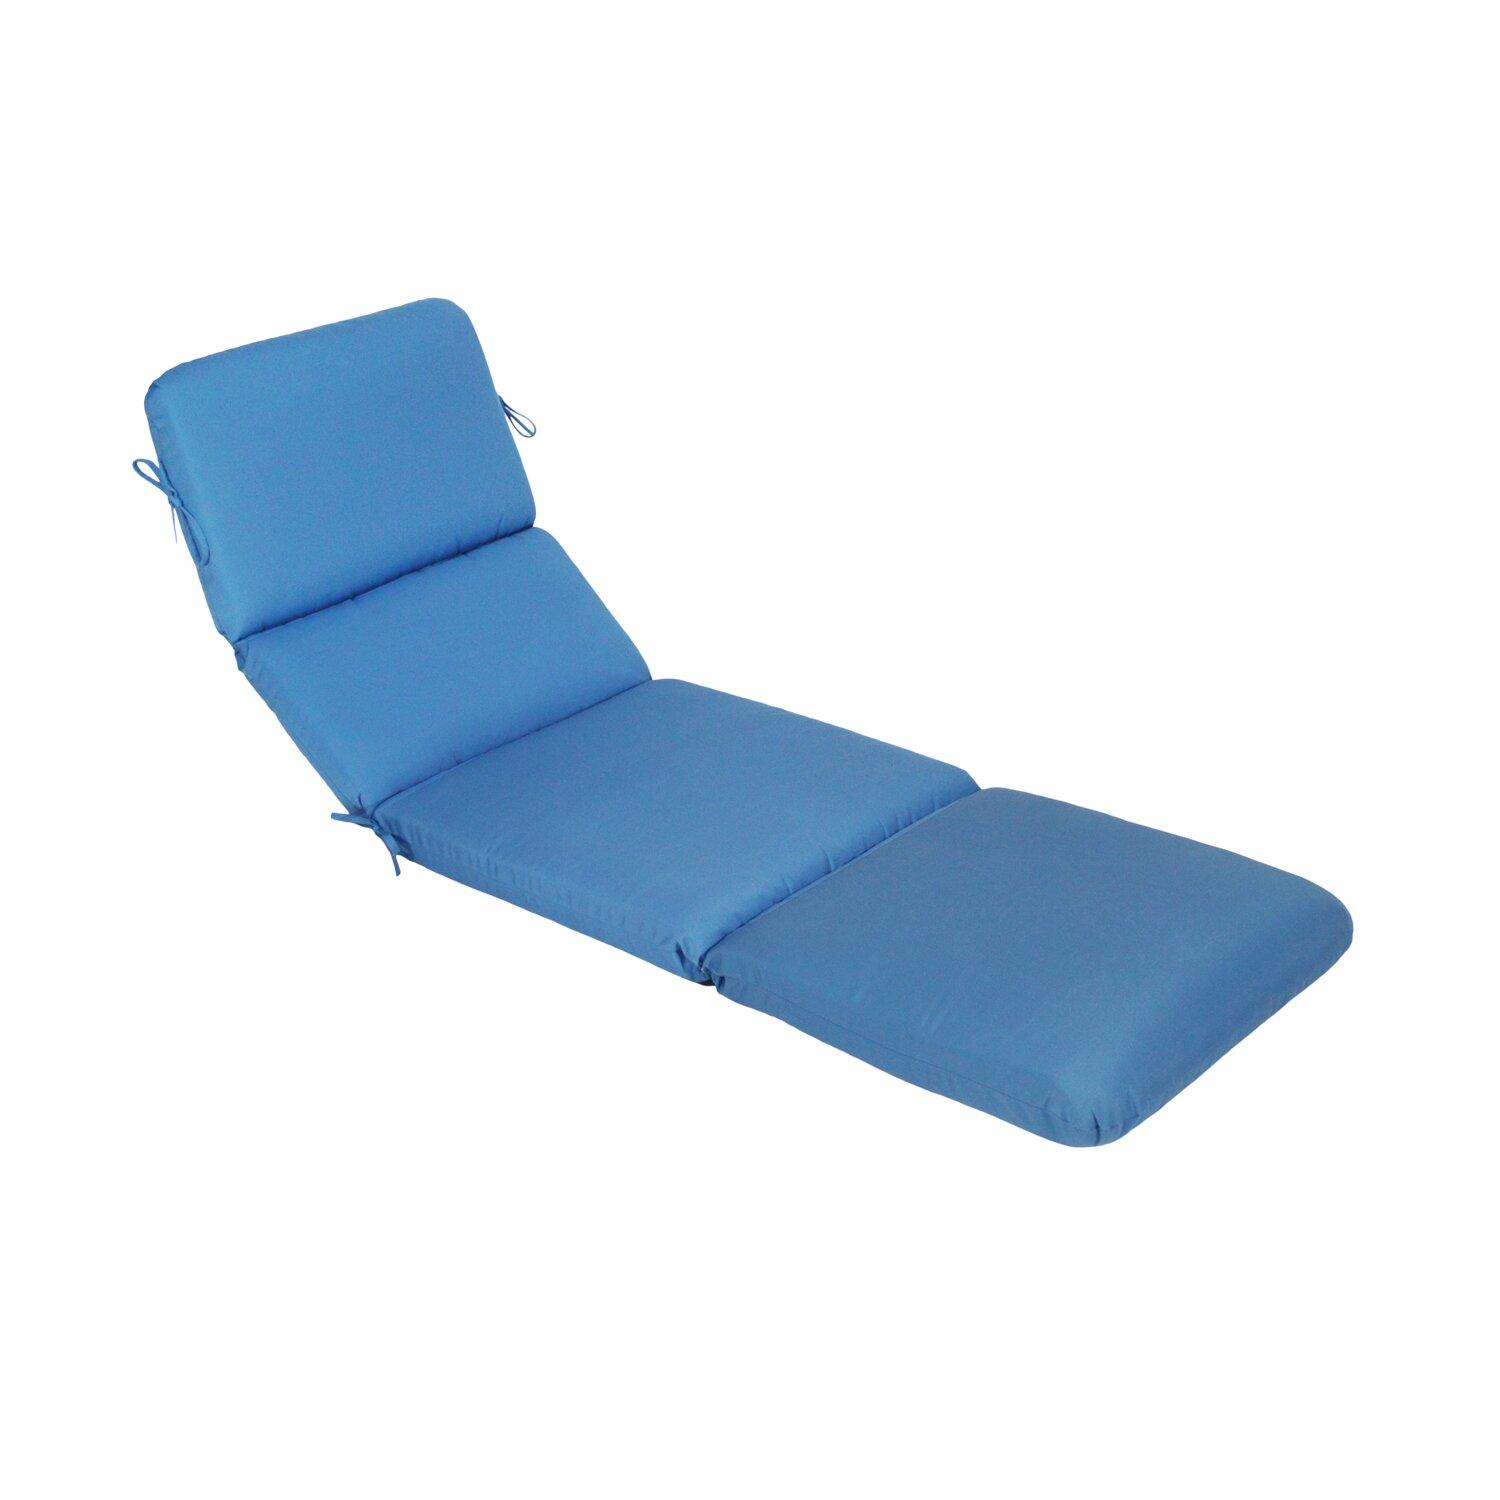 Wildon Home Canvas Outdoor Sunbrella Chaise Lounge